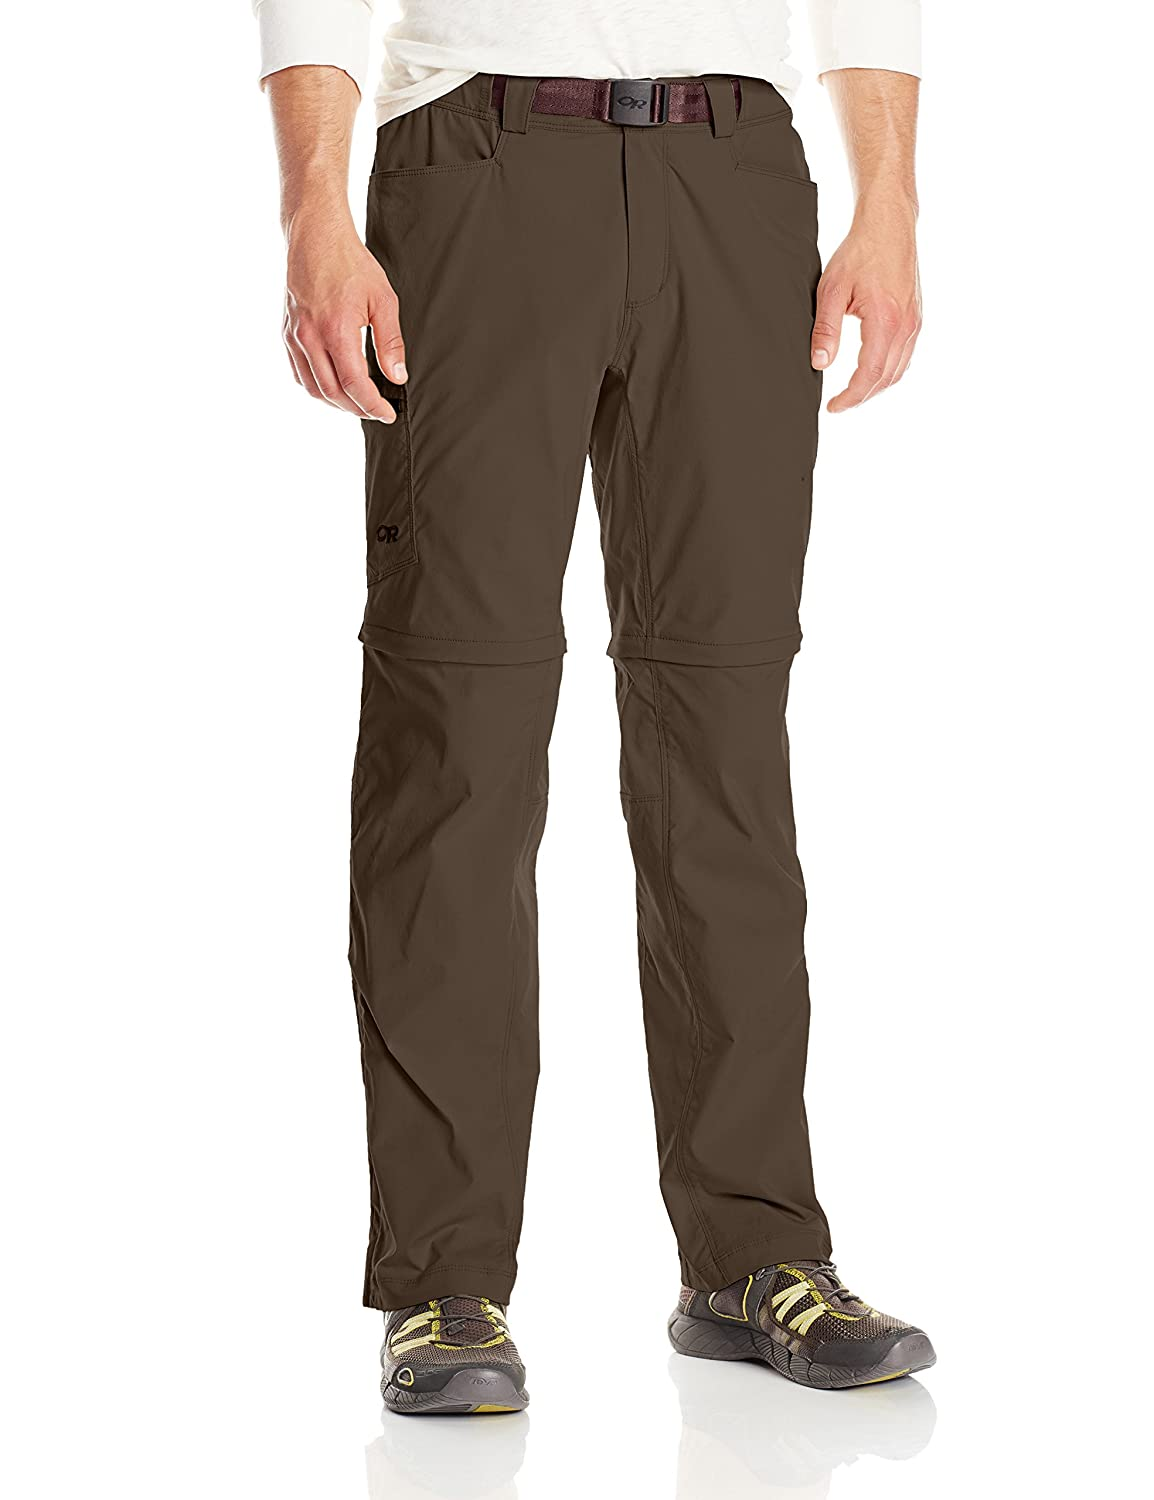 Outdoor Research Equinox Convertible Pants 32""